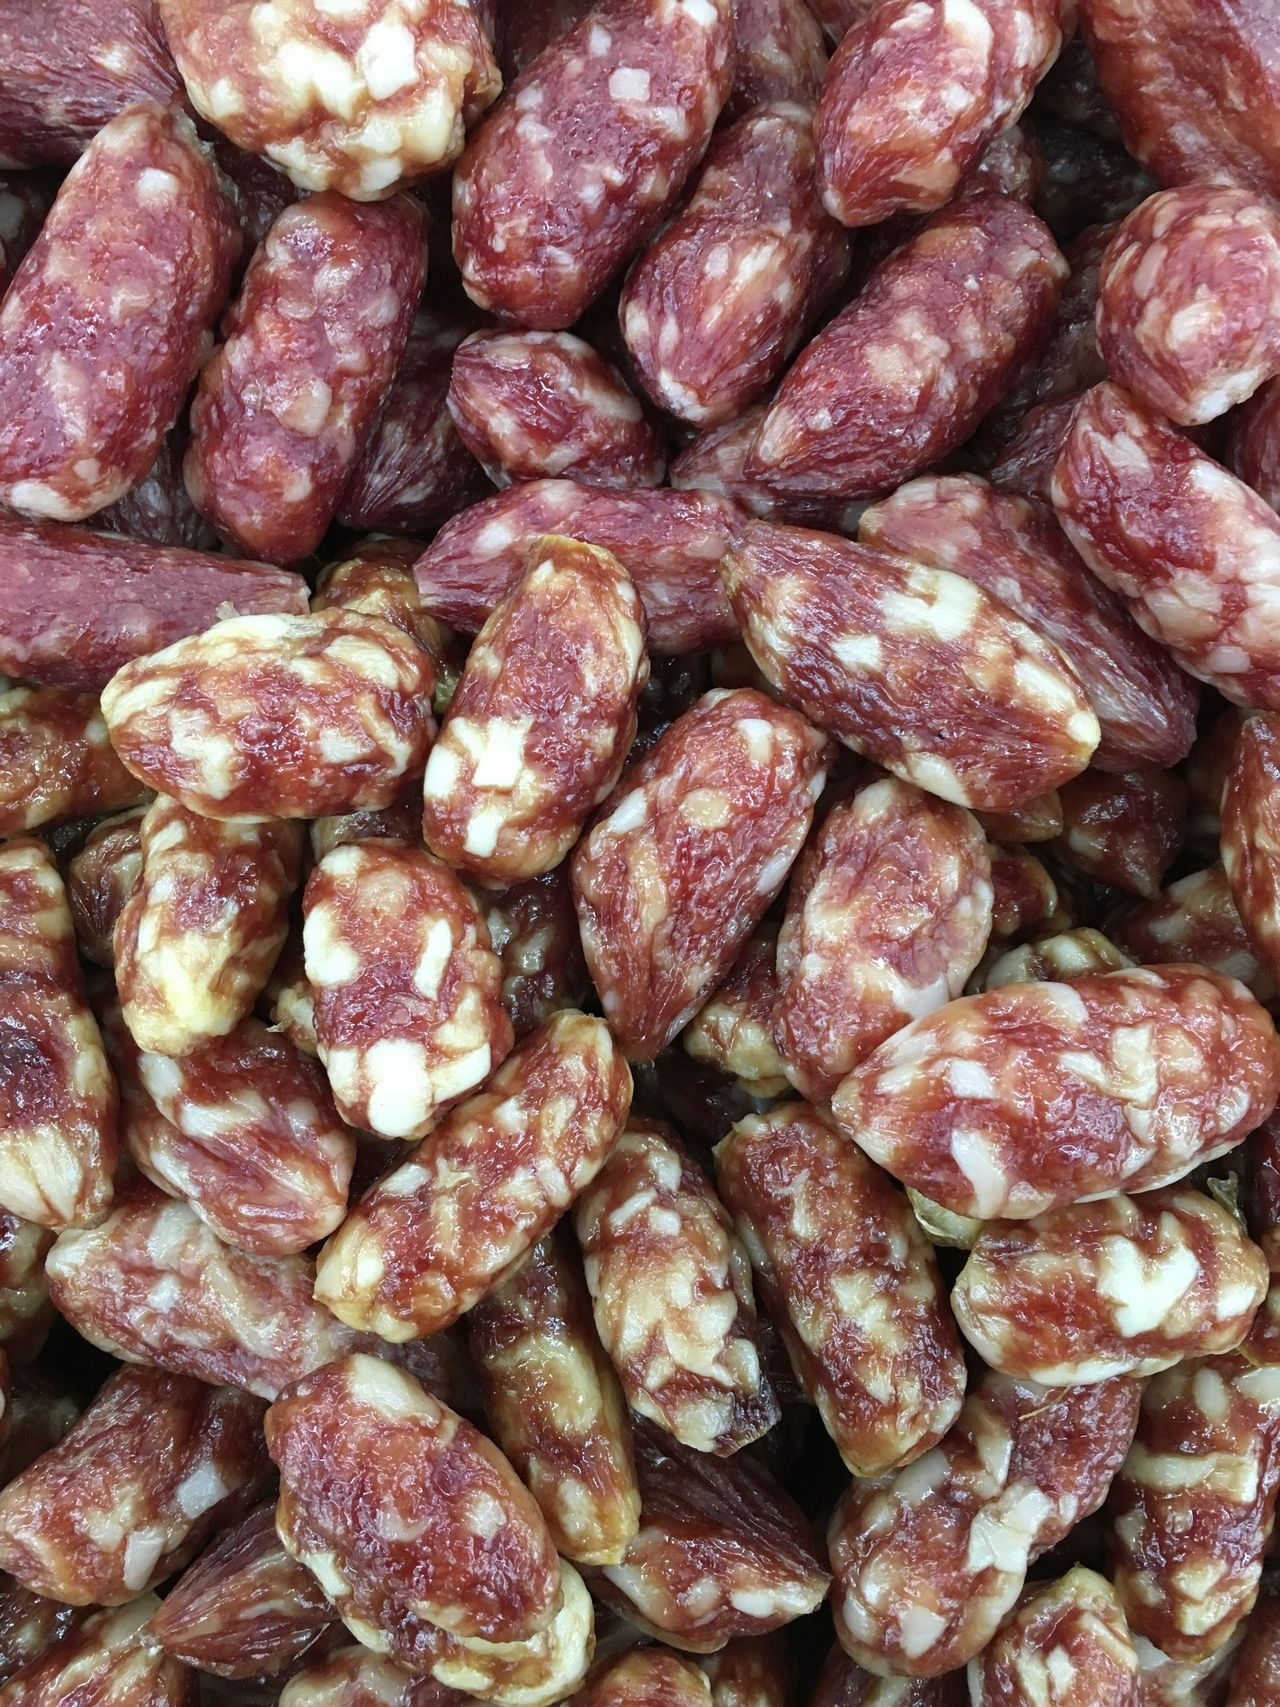 Chorizo Salami Pork Sausage Chorizo Deli Meat Chorizos  Salami Sausage Meat Delicatessen Food Produce Food Photography Food Porn Food And Drink Backgrounds Cuisine Pork Sausage Spicy Sausage